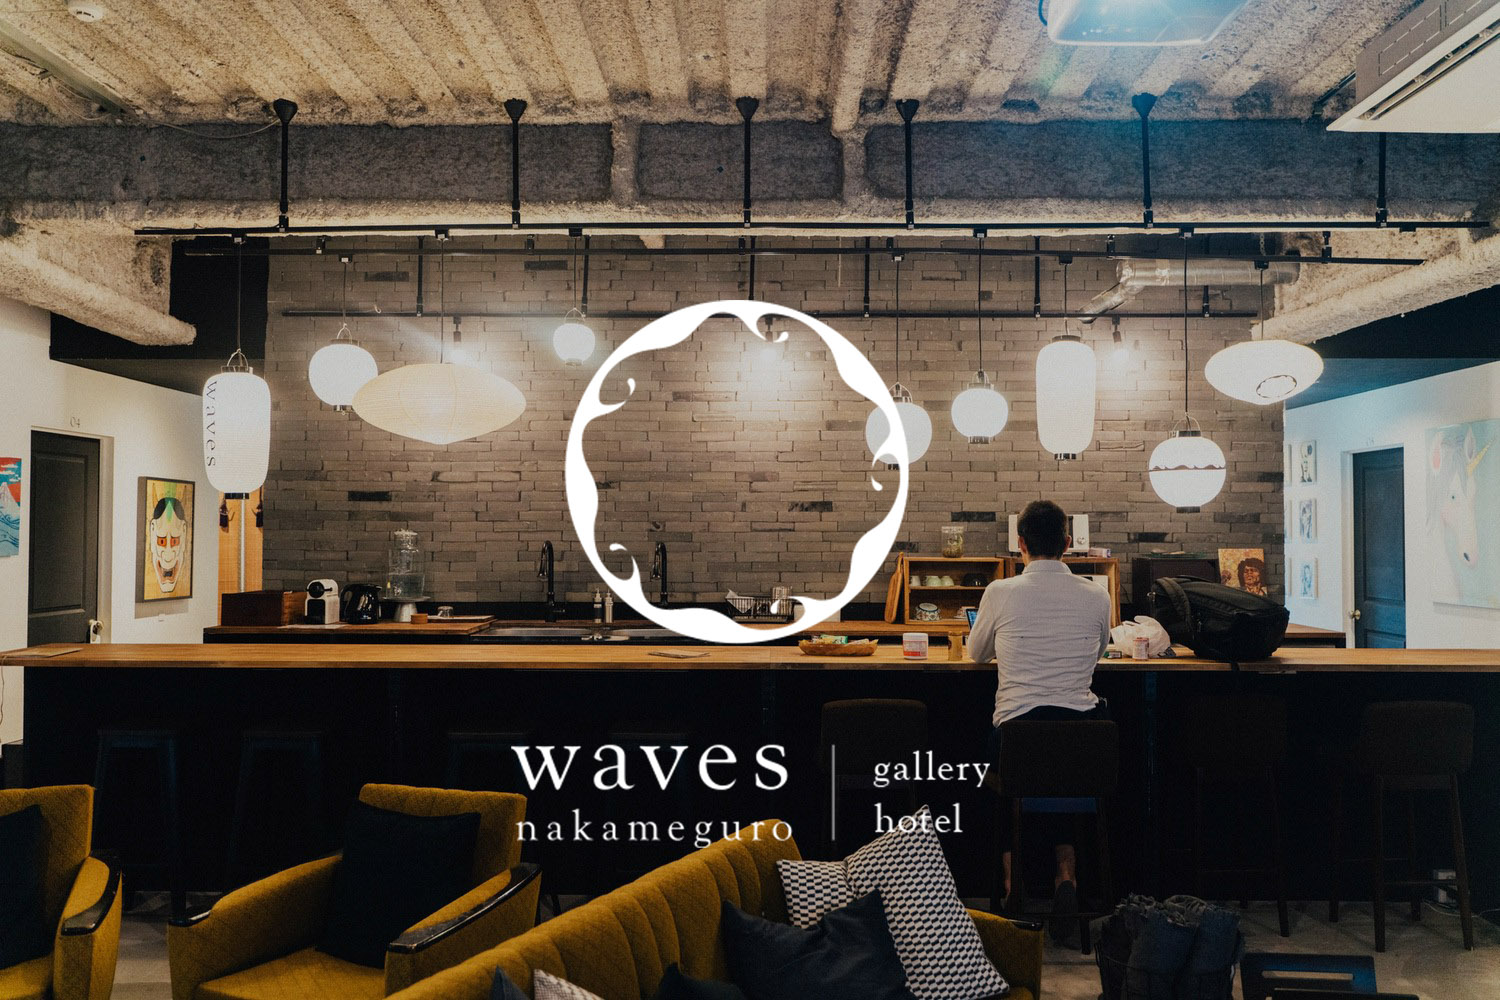 Waves nakameguro 0009のコピー